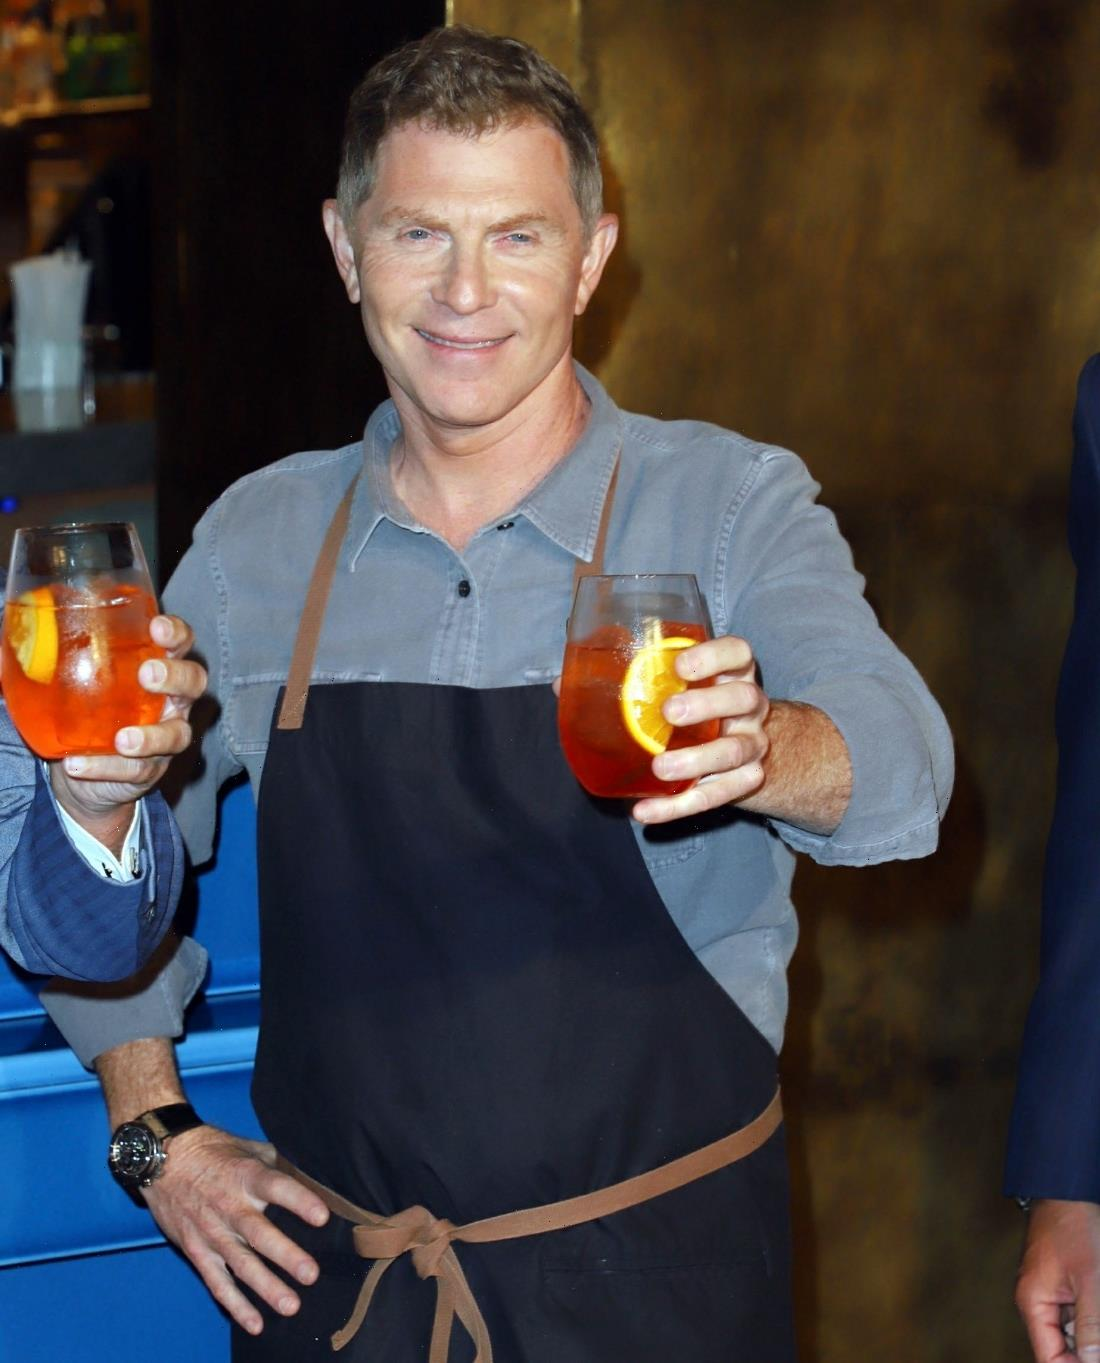 Bobby Flay wanted $100 million to stay on the Food Network, they said no